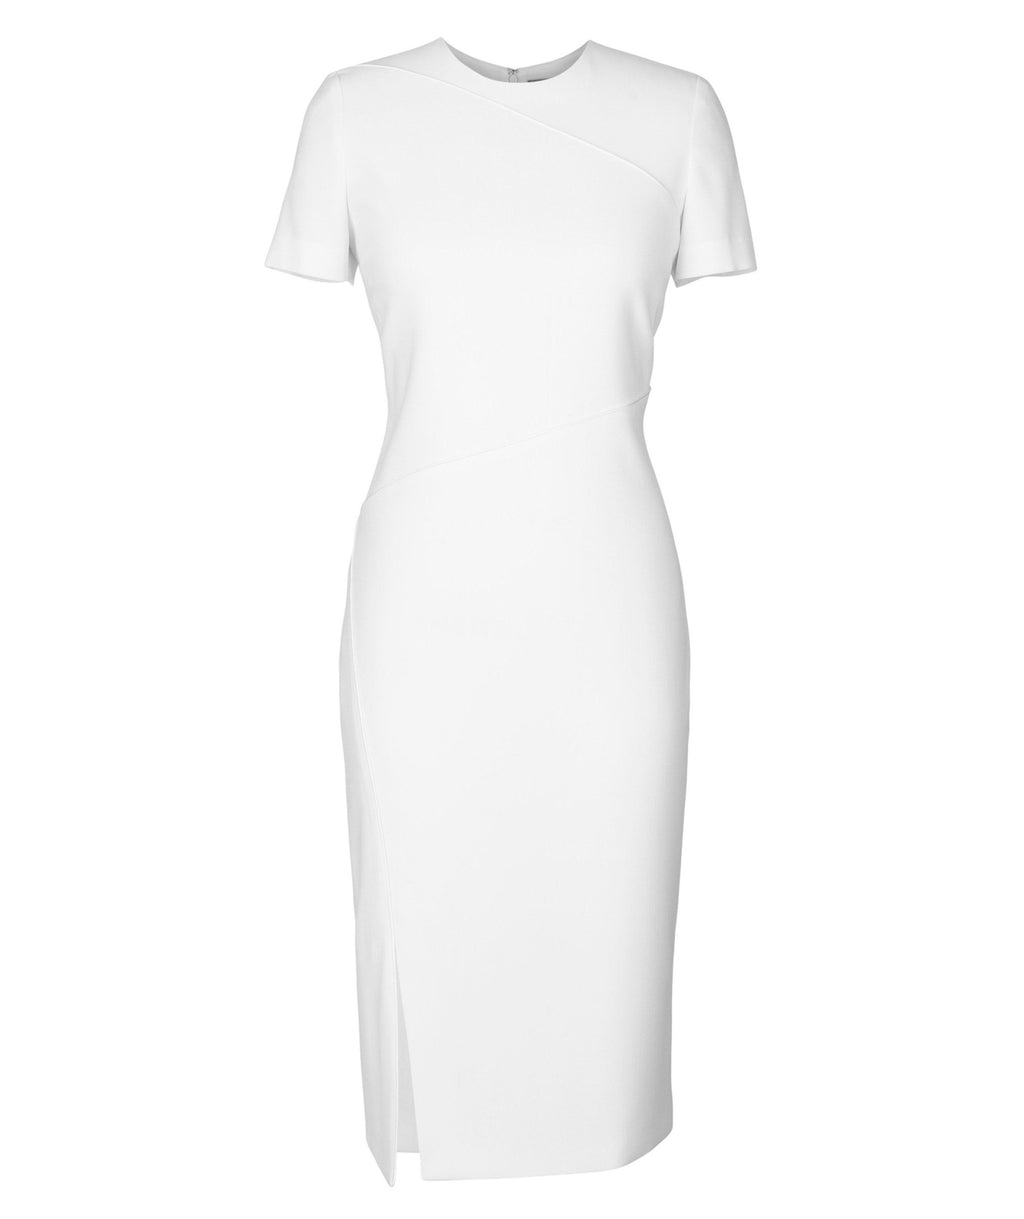 HAN Seam Detail Sheath Dress